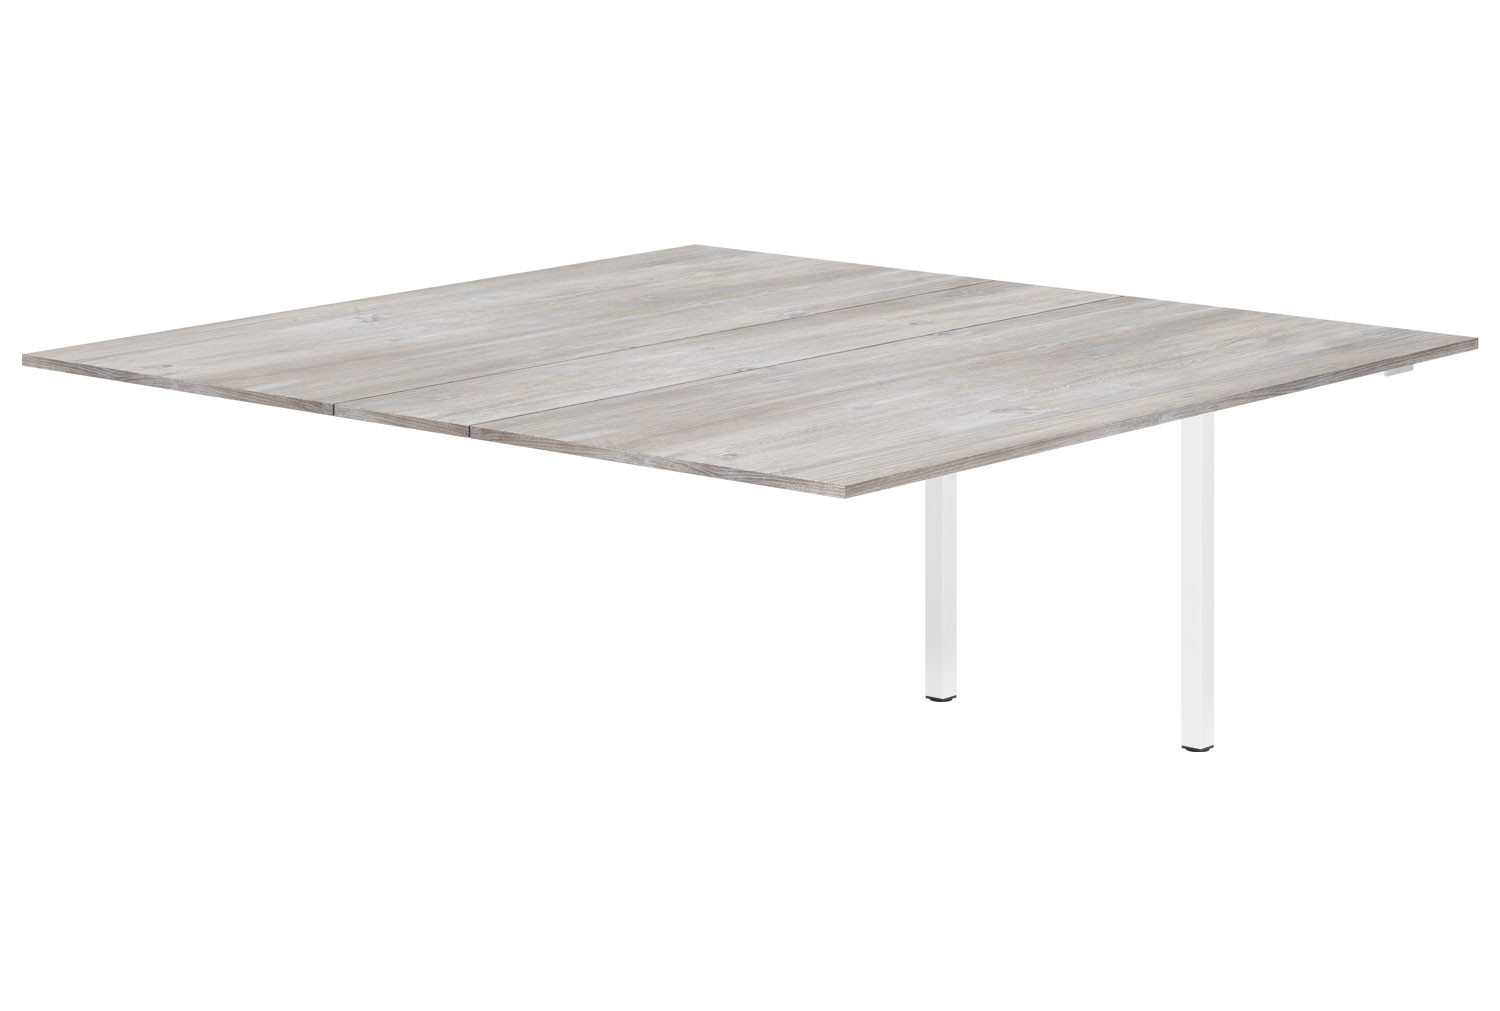 Lasso Meeting Table Add On Unit (Platinum Oak)